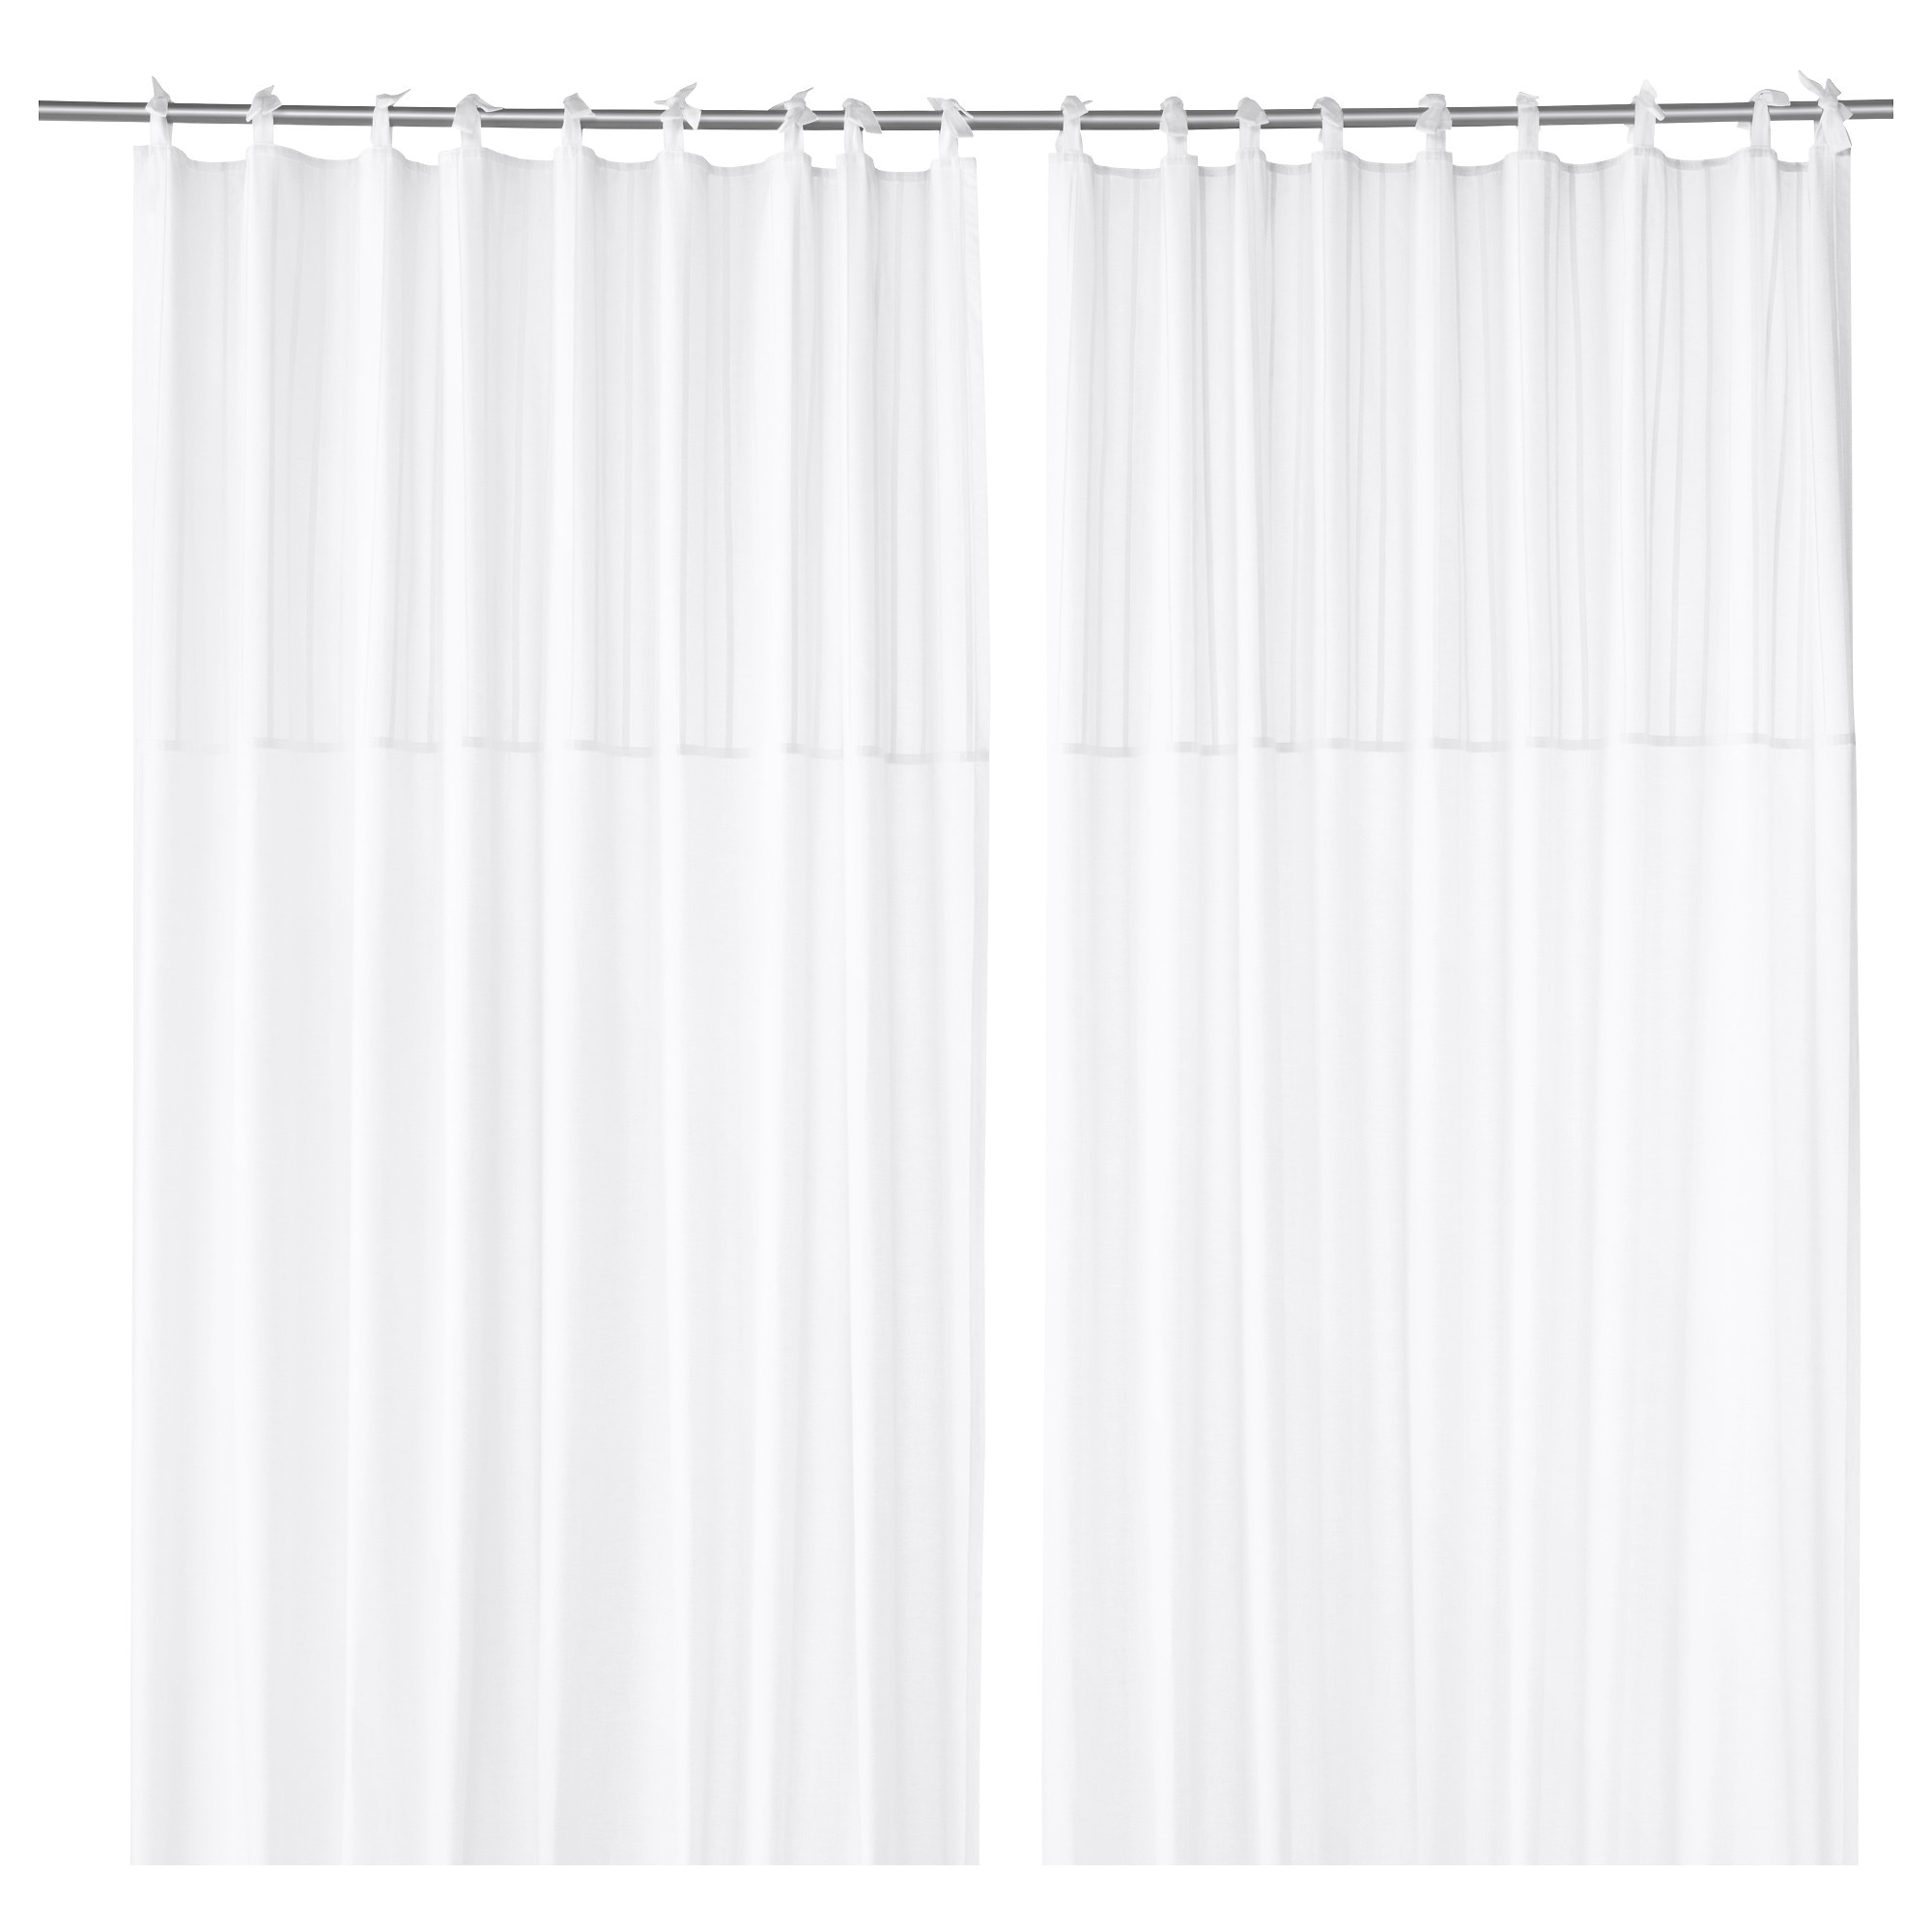 Cafe curtains for bathroom - P Rlblad Curtains 1 Pair White Length 98 Width 57 Weight